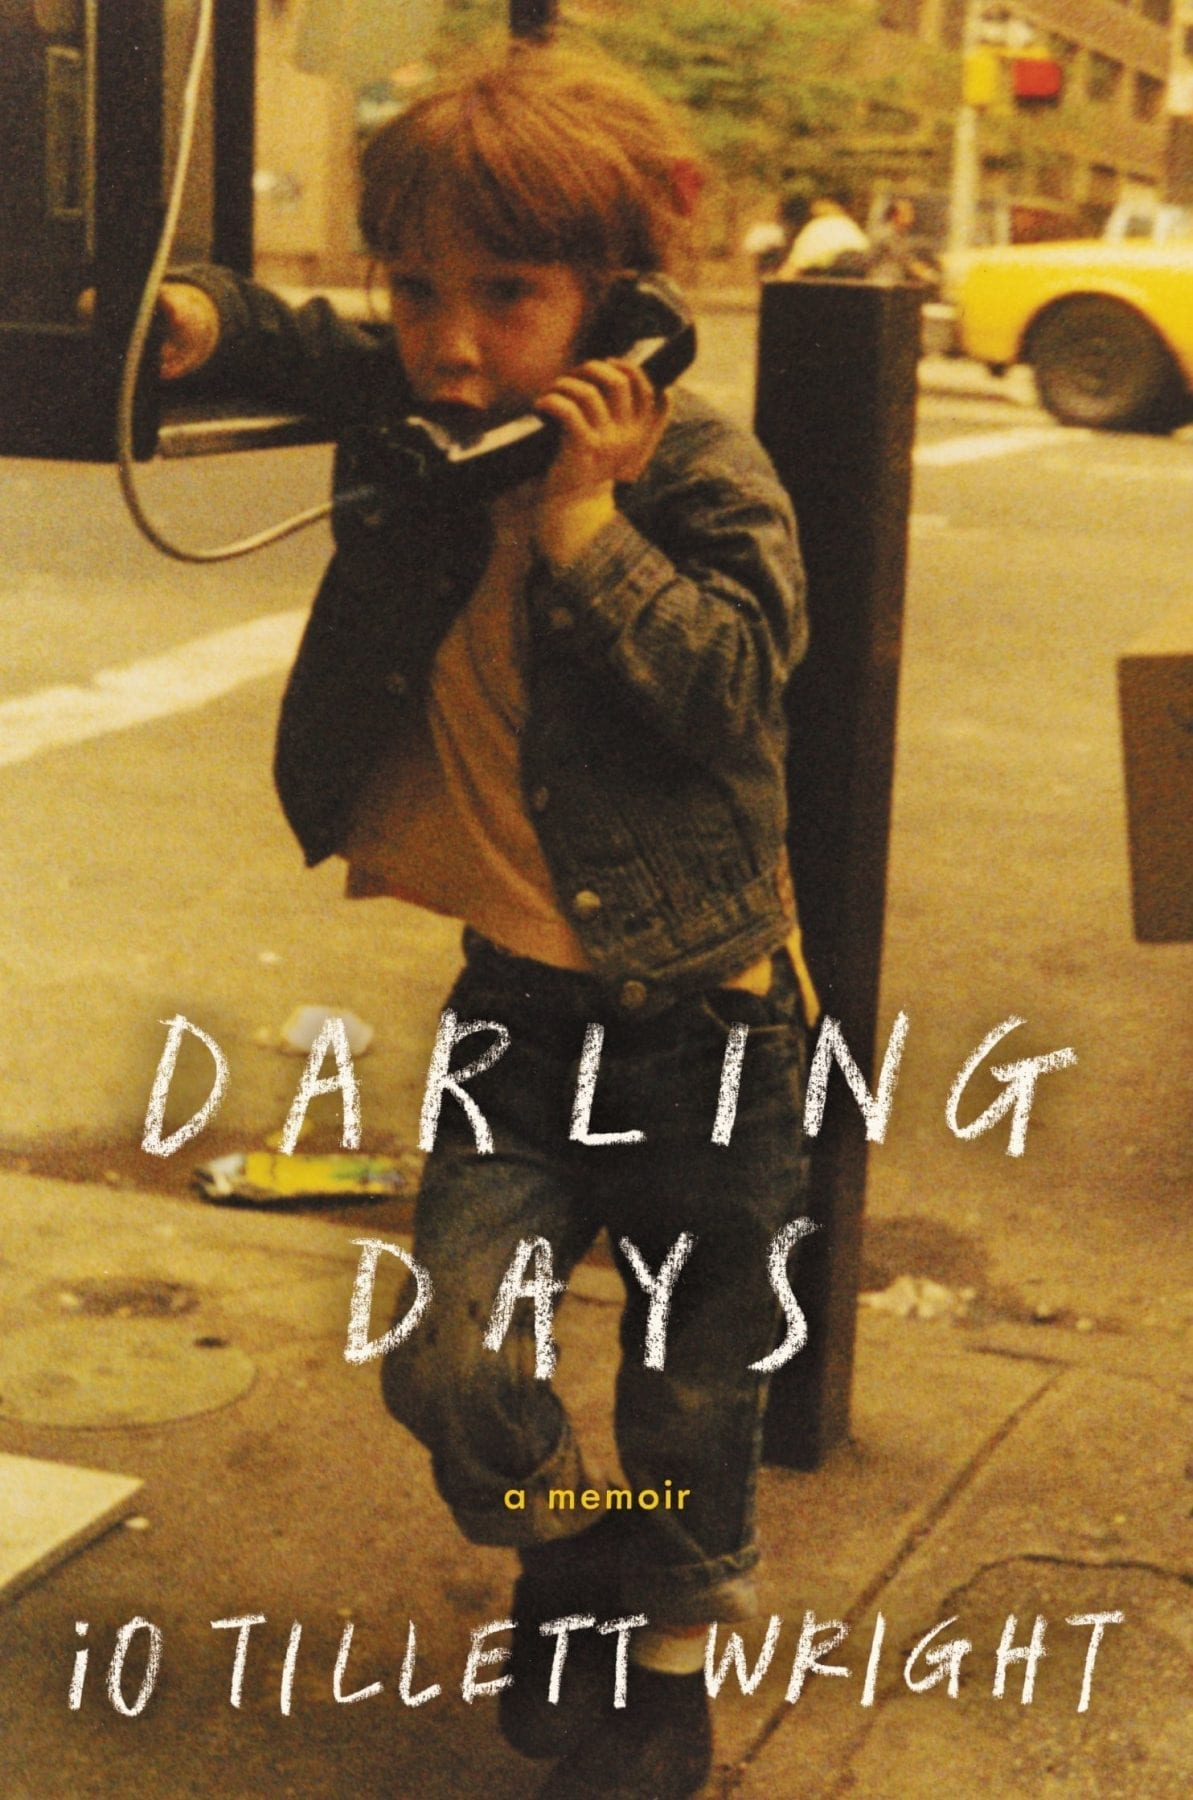 Darling Days by iO Tillet Wright